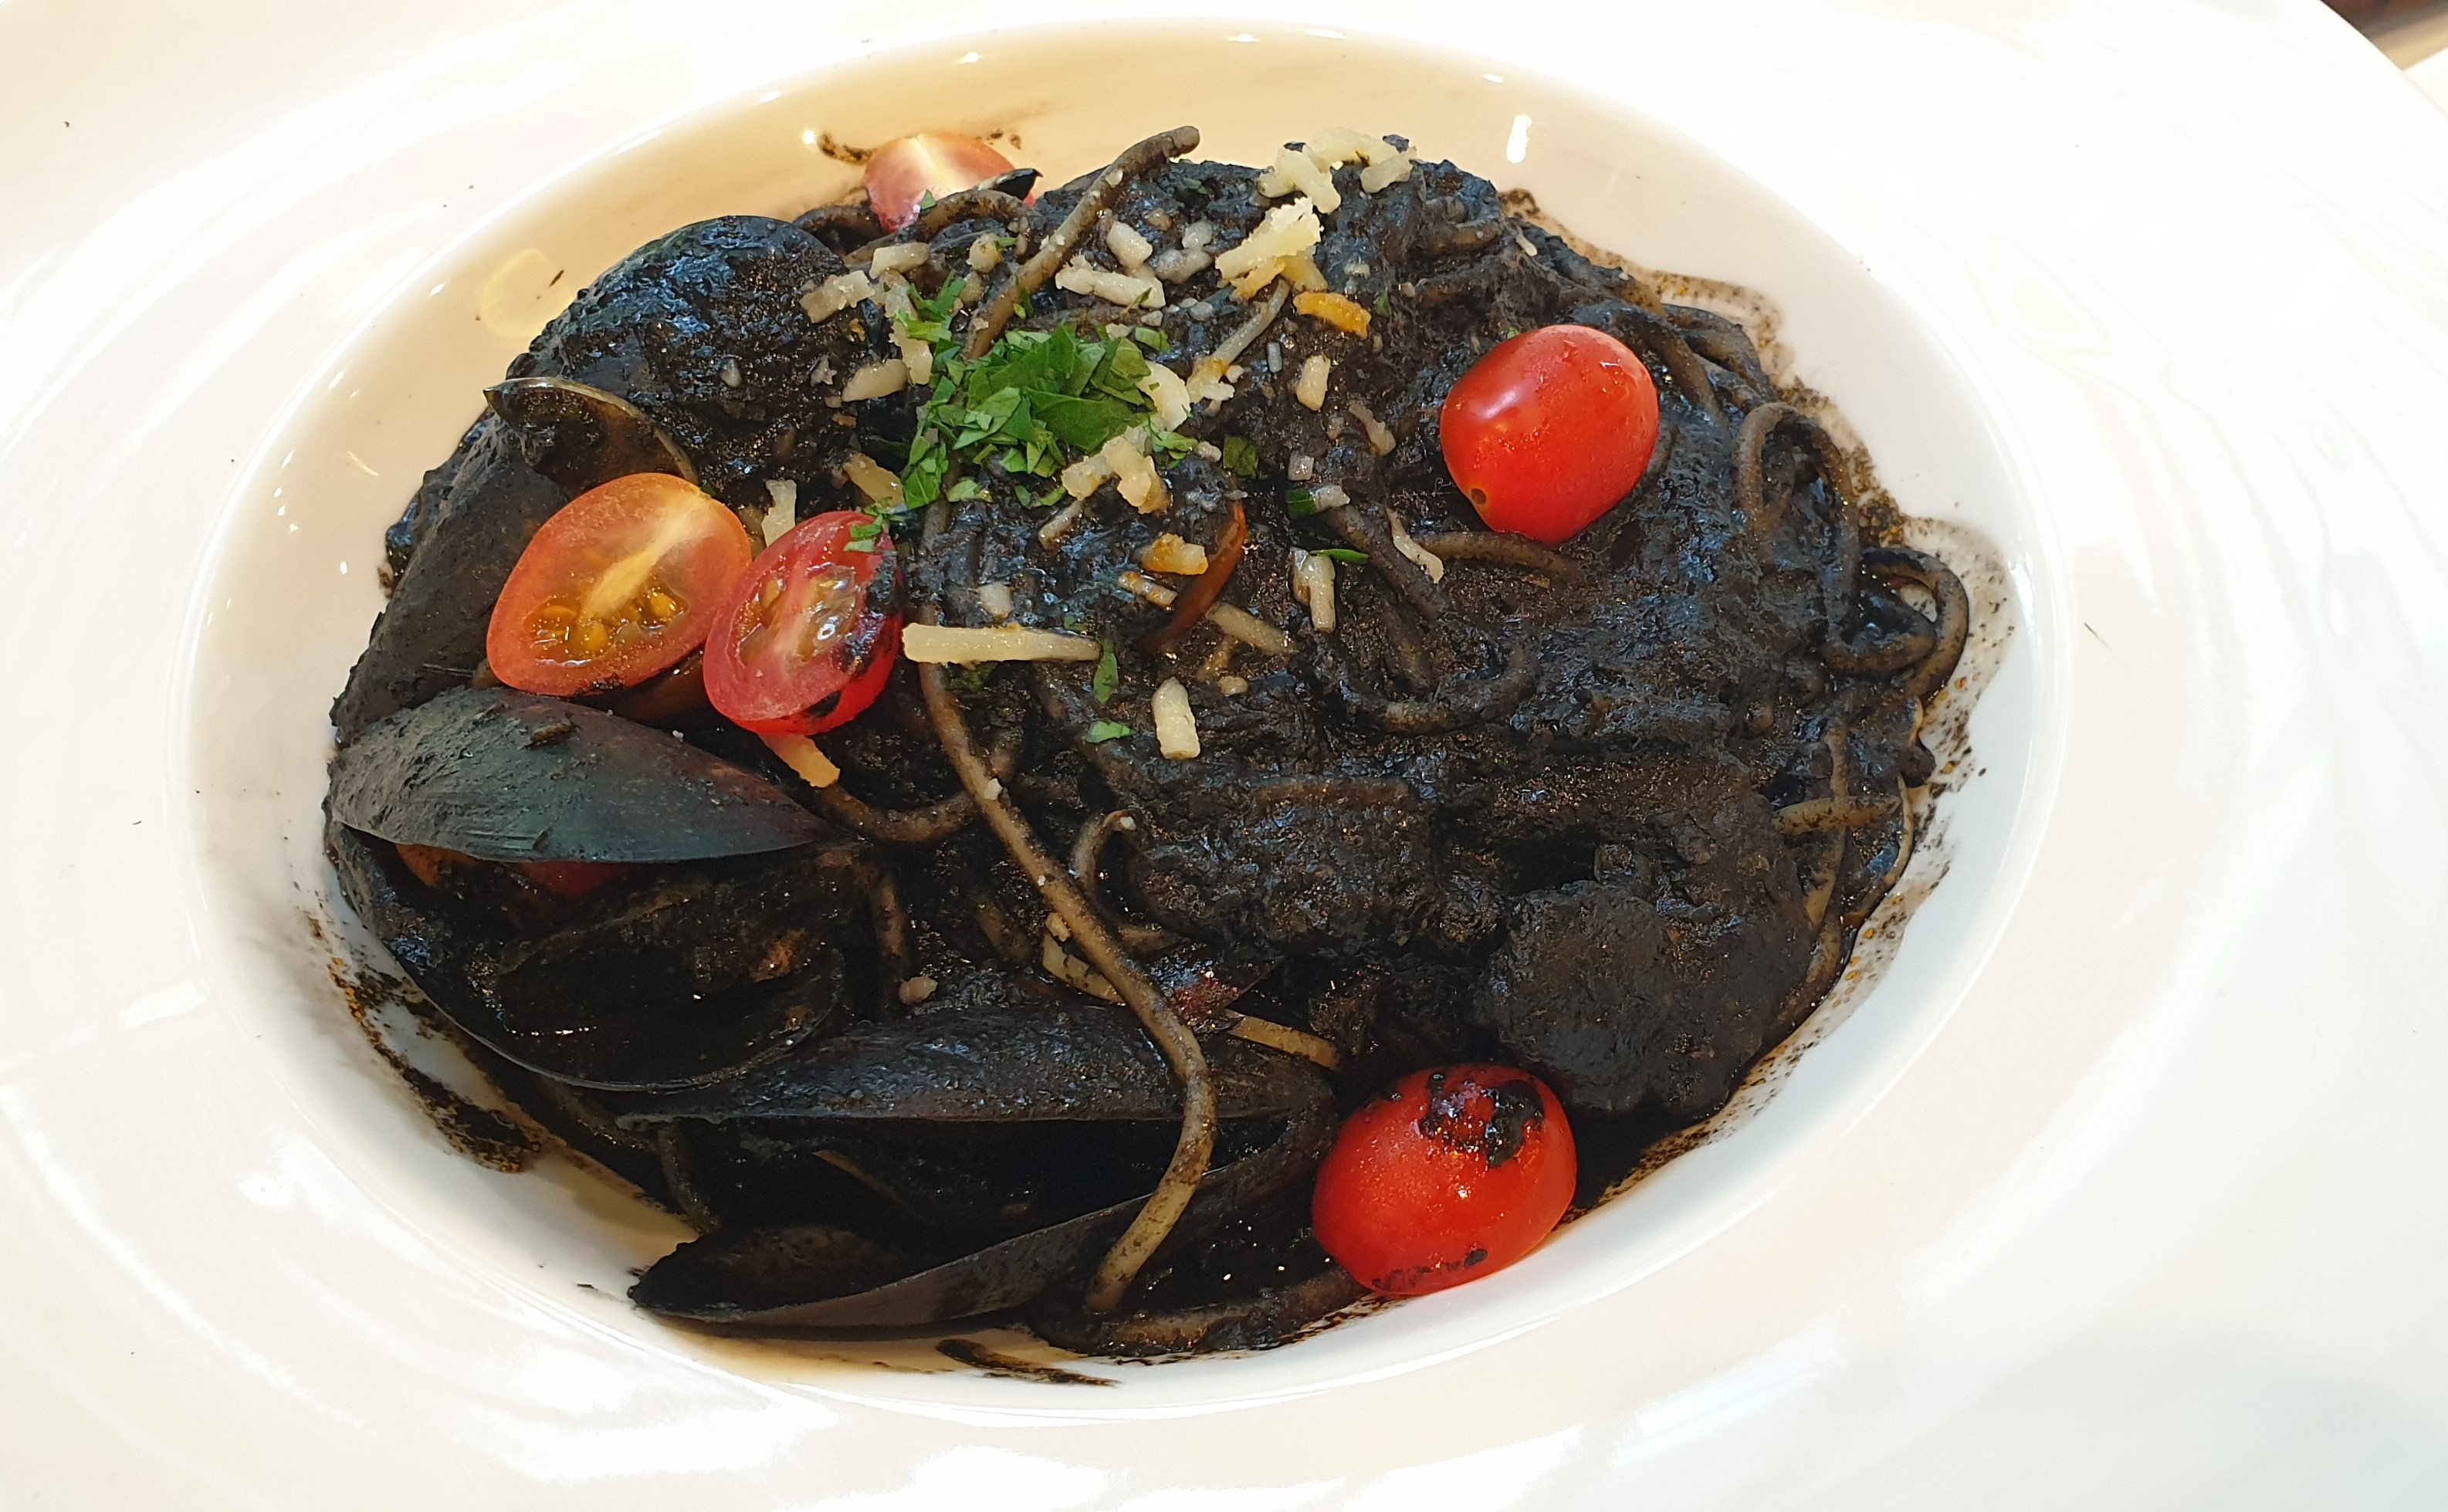 Squid Ink Spaghetti here is spicy and a treat for seafood lovers.